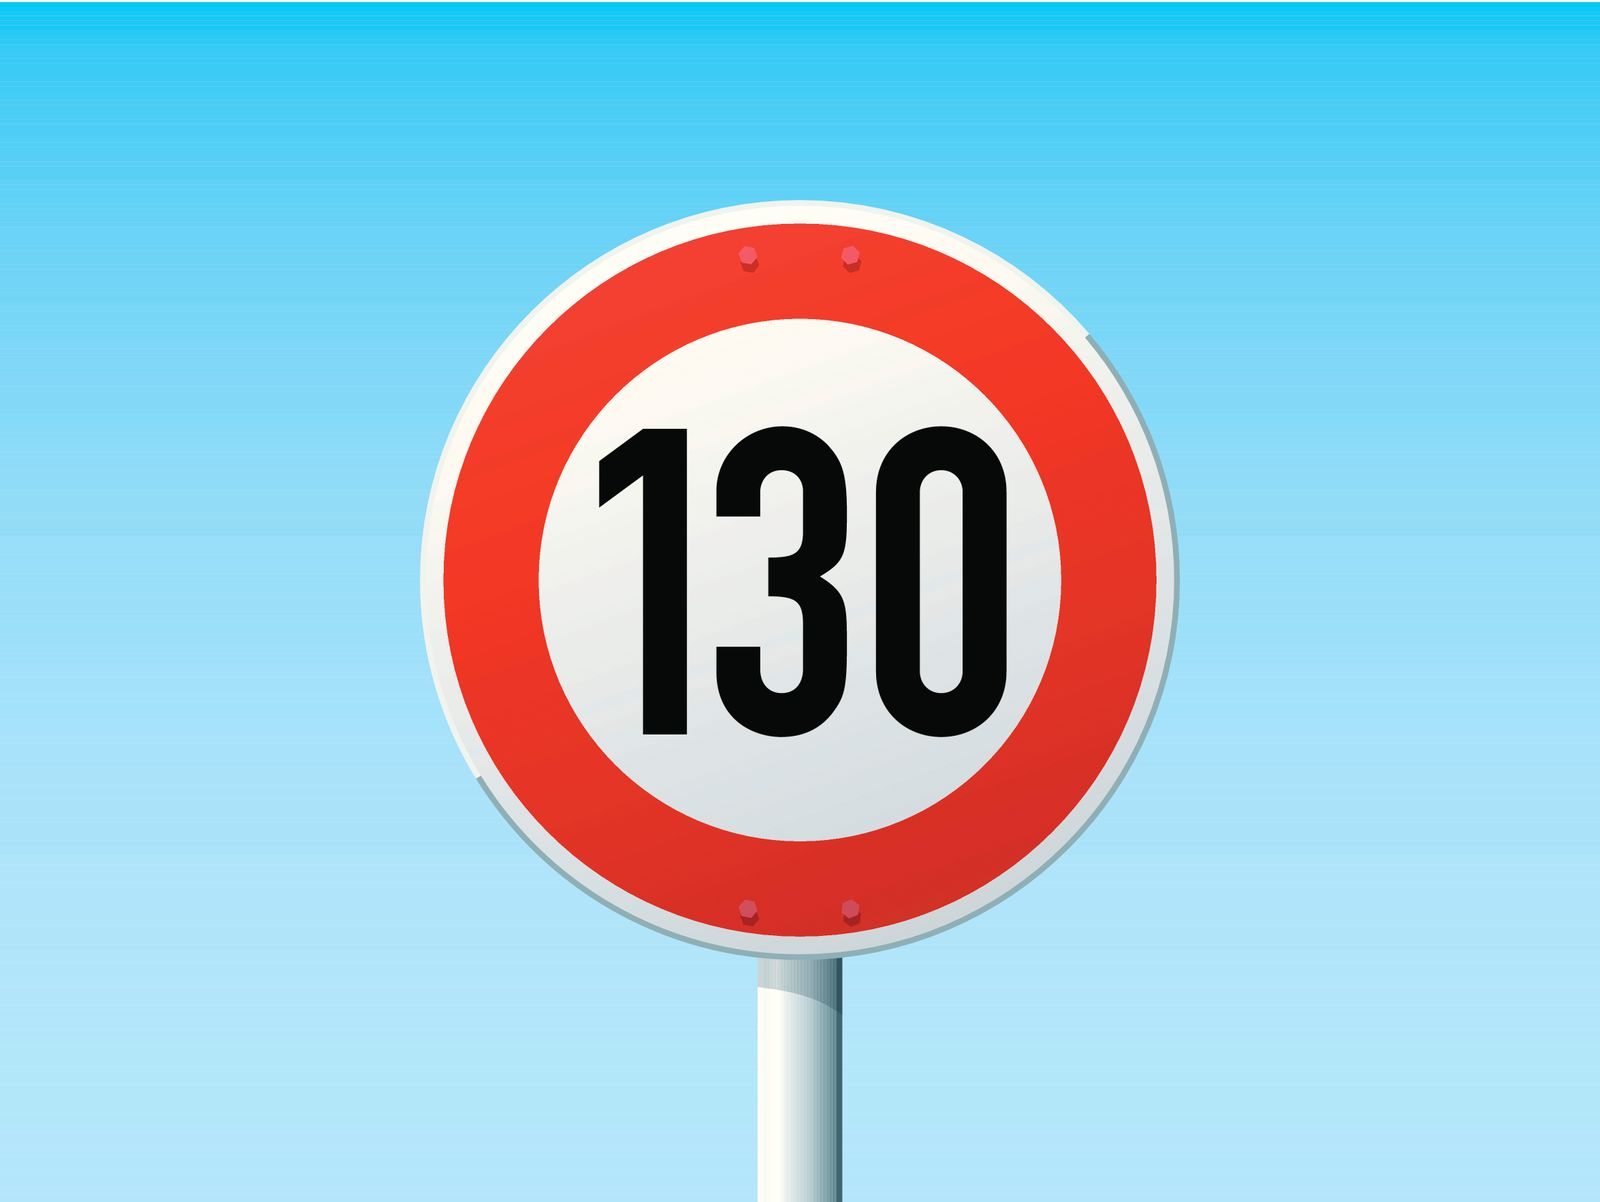 German Road Sign Speed Limit 130 kmh